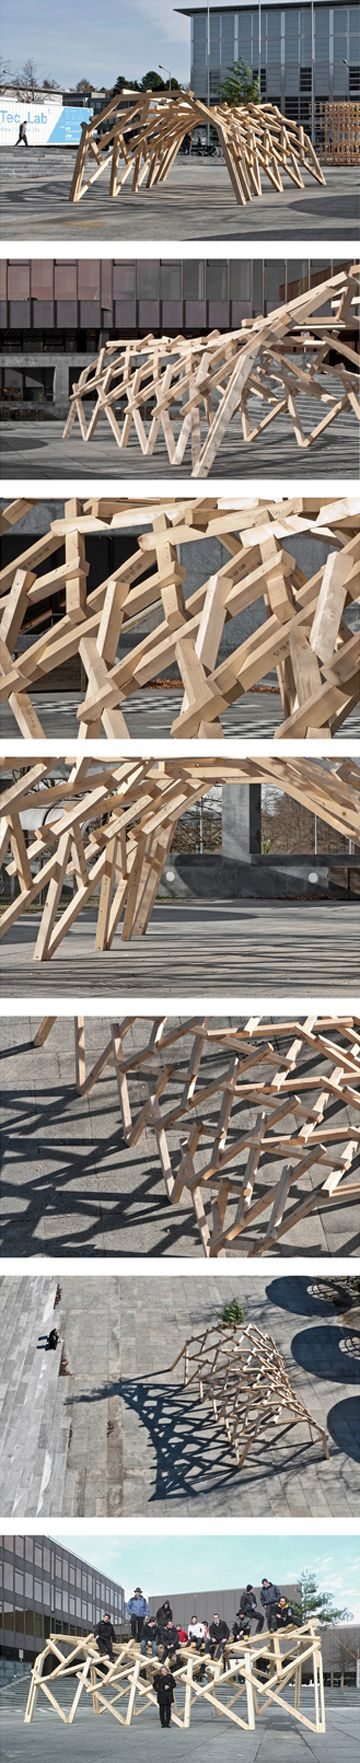 Reciprocal frame structure -  Saddle surface Piazza HIL -  student project led by Swiss architect Udo Thönnissen: